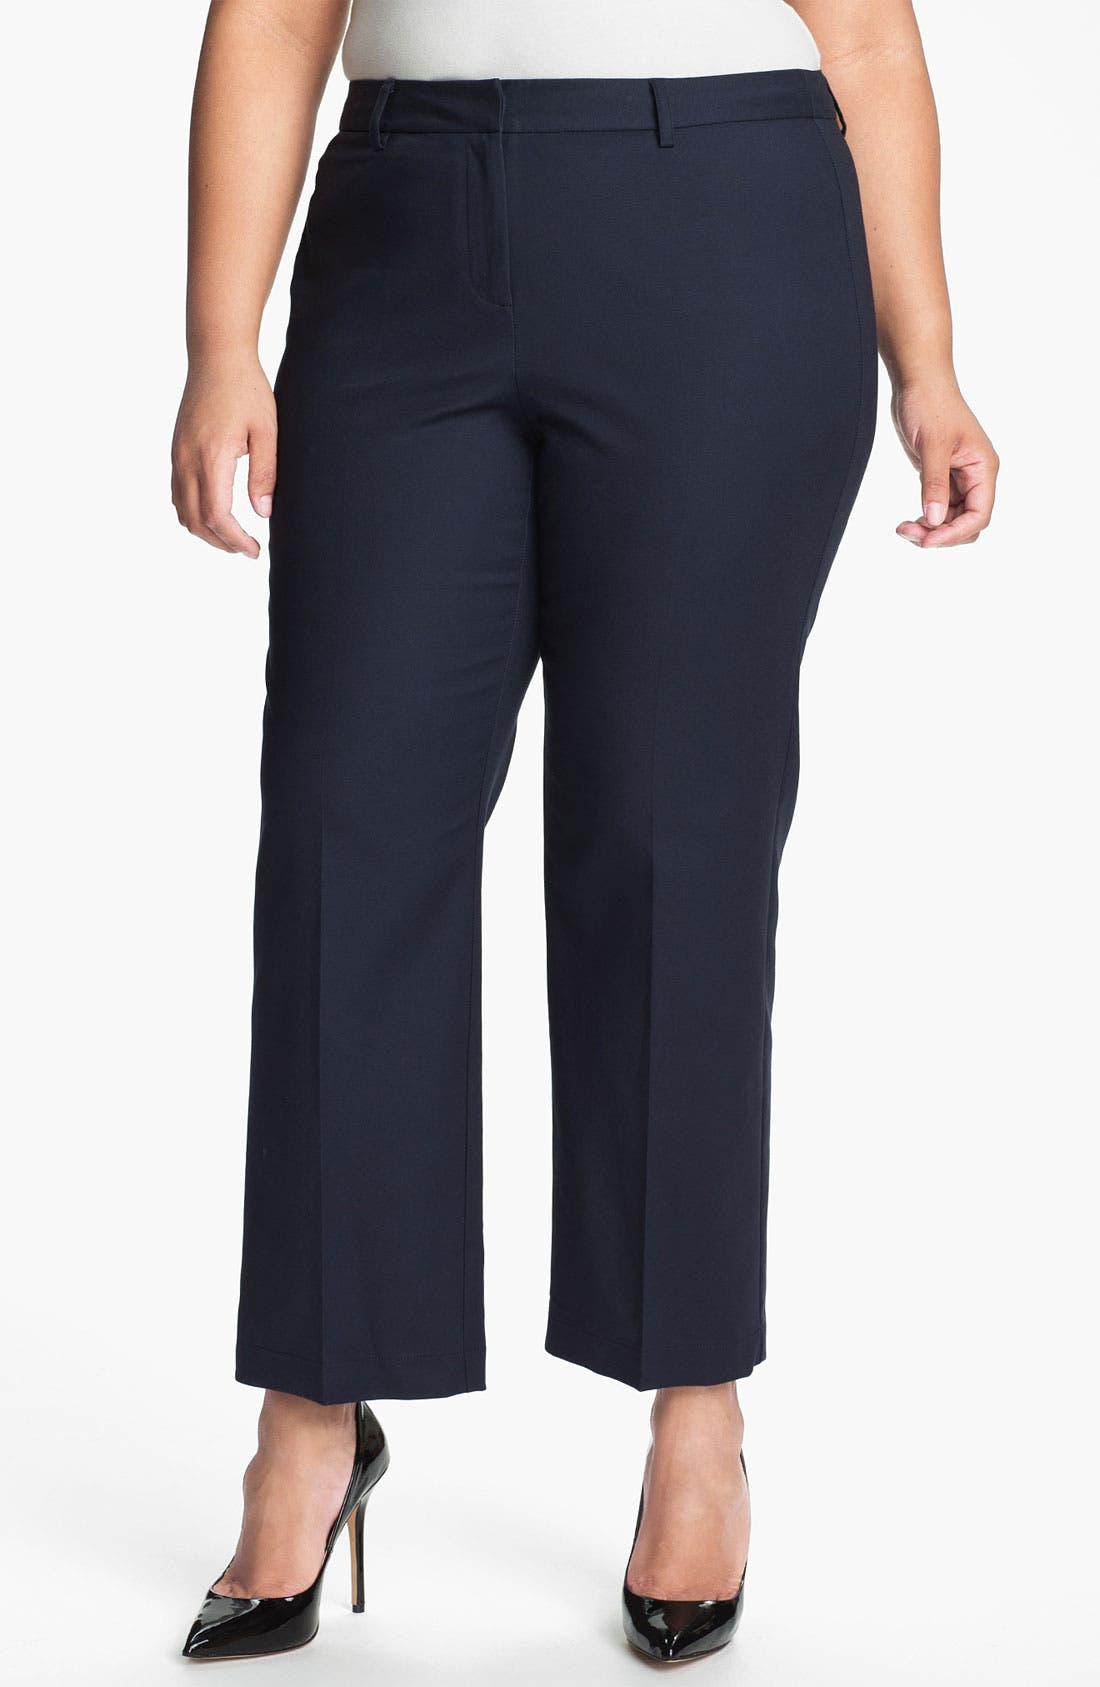 Alternate Image 1 Selected - Kenneth Cole New York Crop Tunnel Pants (Plus)